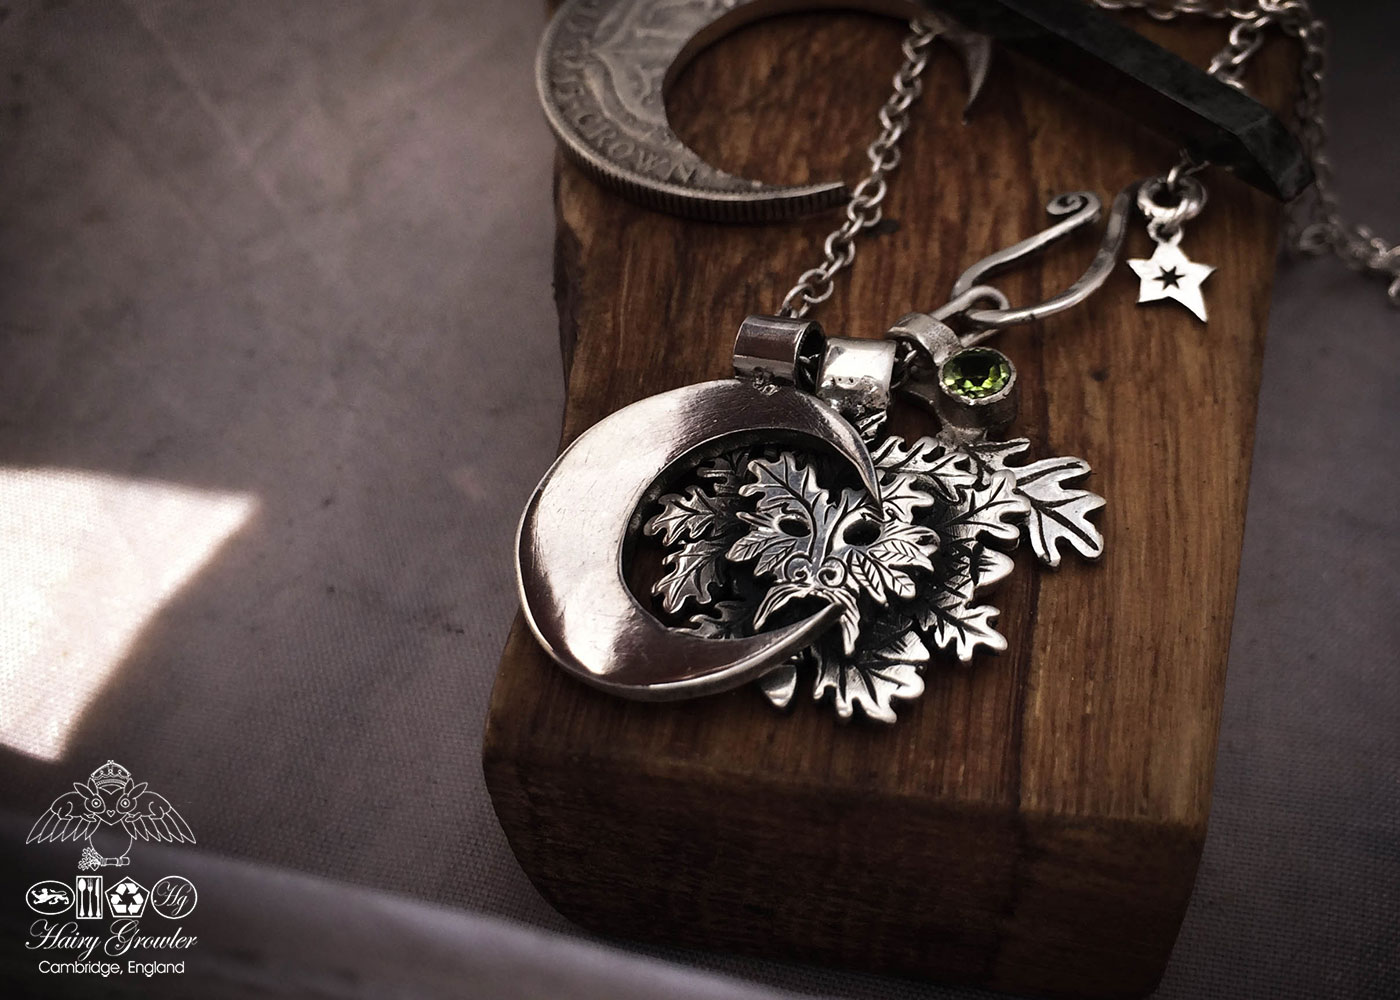 Handcrafted and recycled silver coin greenman pendant necklace